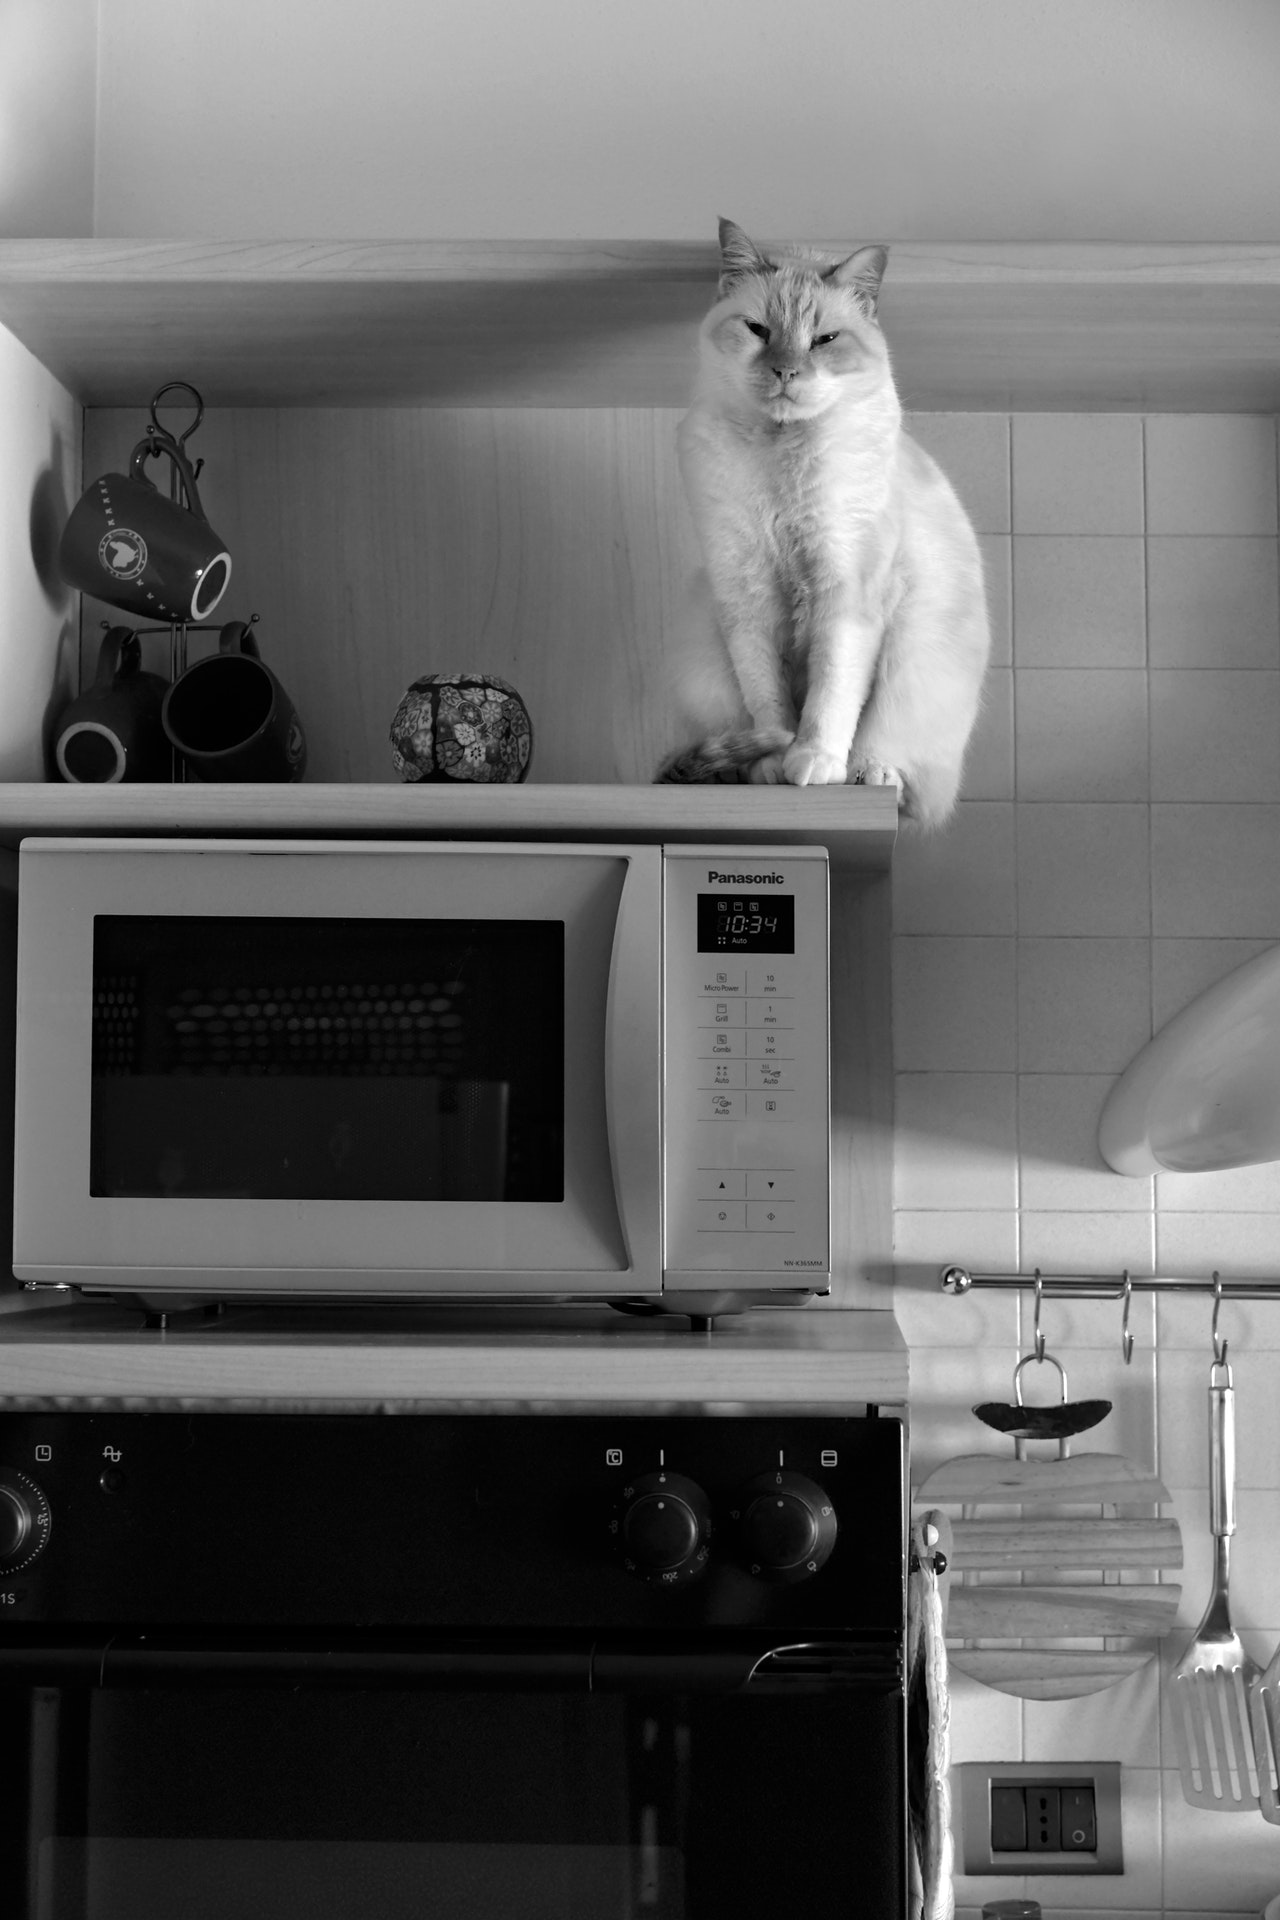 Guides for purchasing and taking care of your microwave